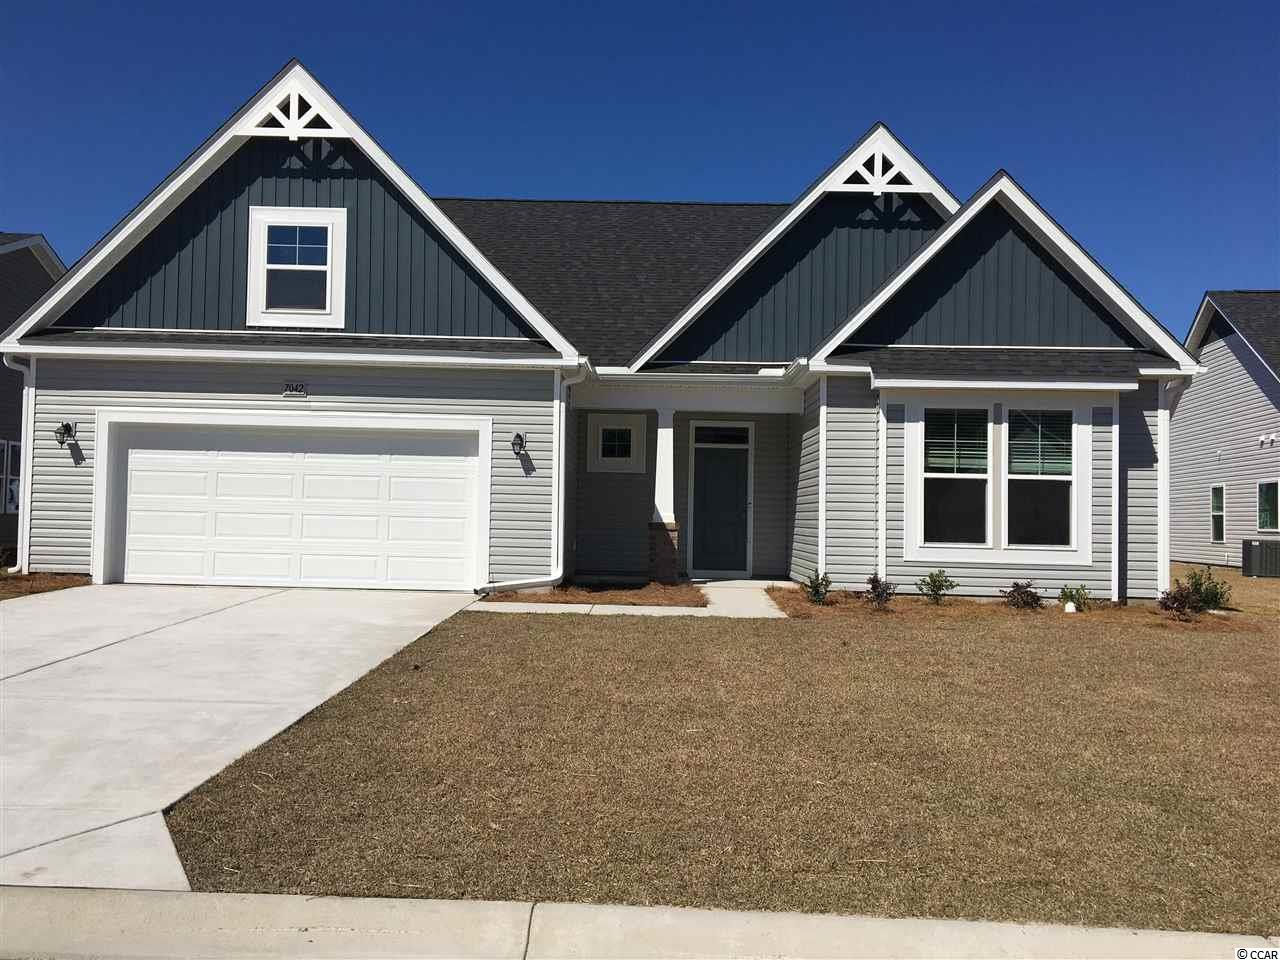 """New Wrightsville 2 story home with 3 bedrooms, study and bonus on large spacious water home site just starting October 2020 so there is time to pick your personalized features and colors. This home has had a covered porch, bay window in both the dining room and the master bedroom added along with a fireplace, window jambs.   Our design team has added the following selections to this home: Fireplace. Ceramic tile in the baths and laundry. 5"""" laminate in the foyer, great room, casual dining and kitchen. Comfort height toilets. Upgraded kitchen faucet. Upgraded brushed nickel finishes. Audio chase pipe for hanging the TV. Pendant lights over the kitchen island.  Ceiling fans in the Master bedroom and Great room. 4 Can lights in the great room. Gourmet kitchen with SST appliances, Gas cook top, double oven and microwave that is vented to the exterior. Upgraded kitchen backsplash. Upgraded marble countertops in all baths. Upgraded Quartz counter tops in the kitchen. Single bowl SST kitchen sink. Upgraded cabinets with crown molding and painted.     Picture is for representation purposes only.  """"Photos are of a similar Wrightsville home. (Home and community information, including pricing, included features, terms, availability and amenities, are subject to change prior to sale at any time without notice or obligation. Square footage's are approximate. Pictures, photographs, colors, features, and sizes are for illustration purposes only and will vary from the homes as built.)"""